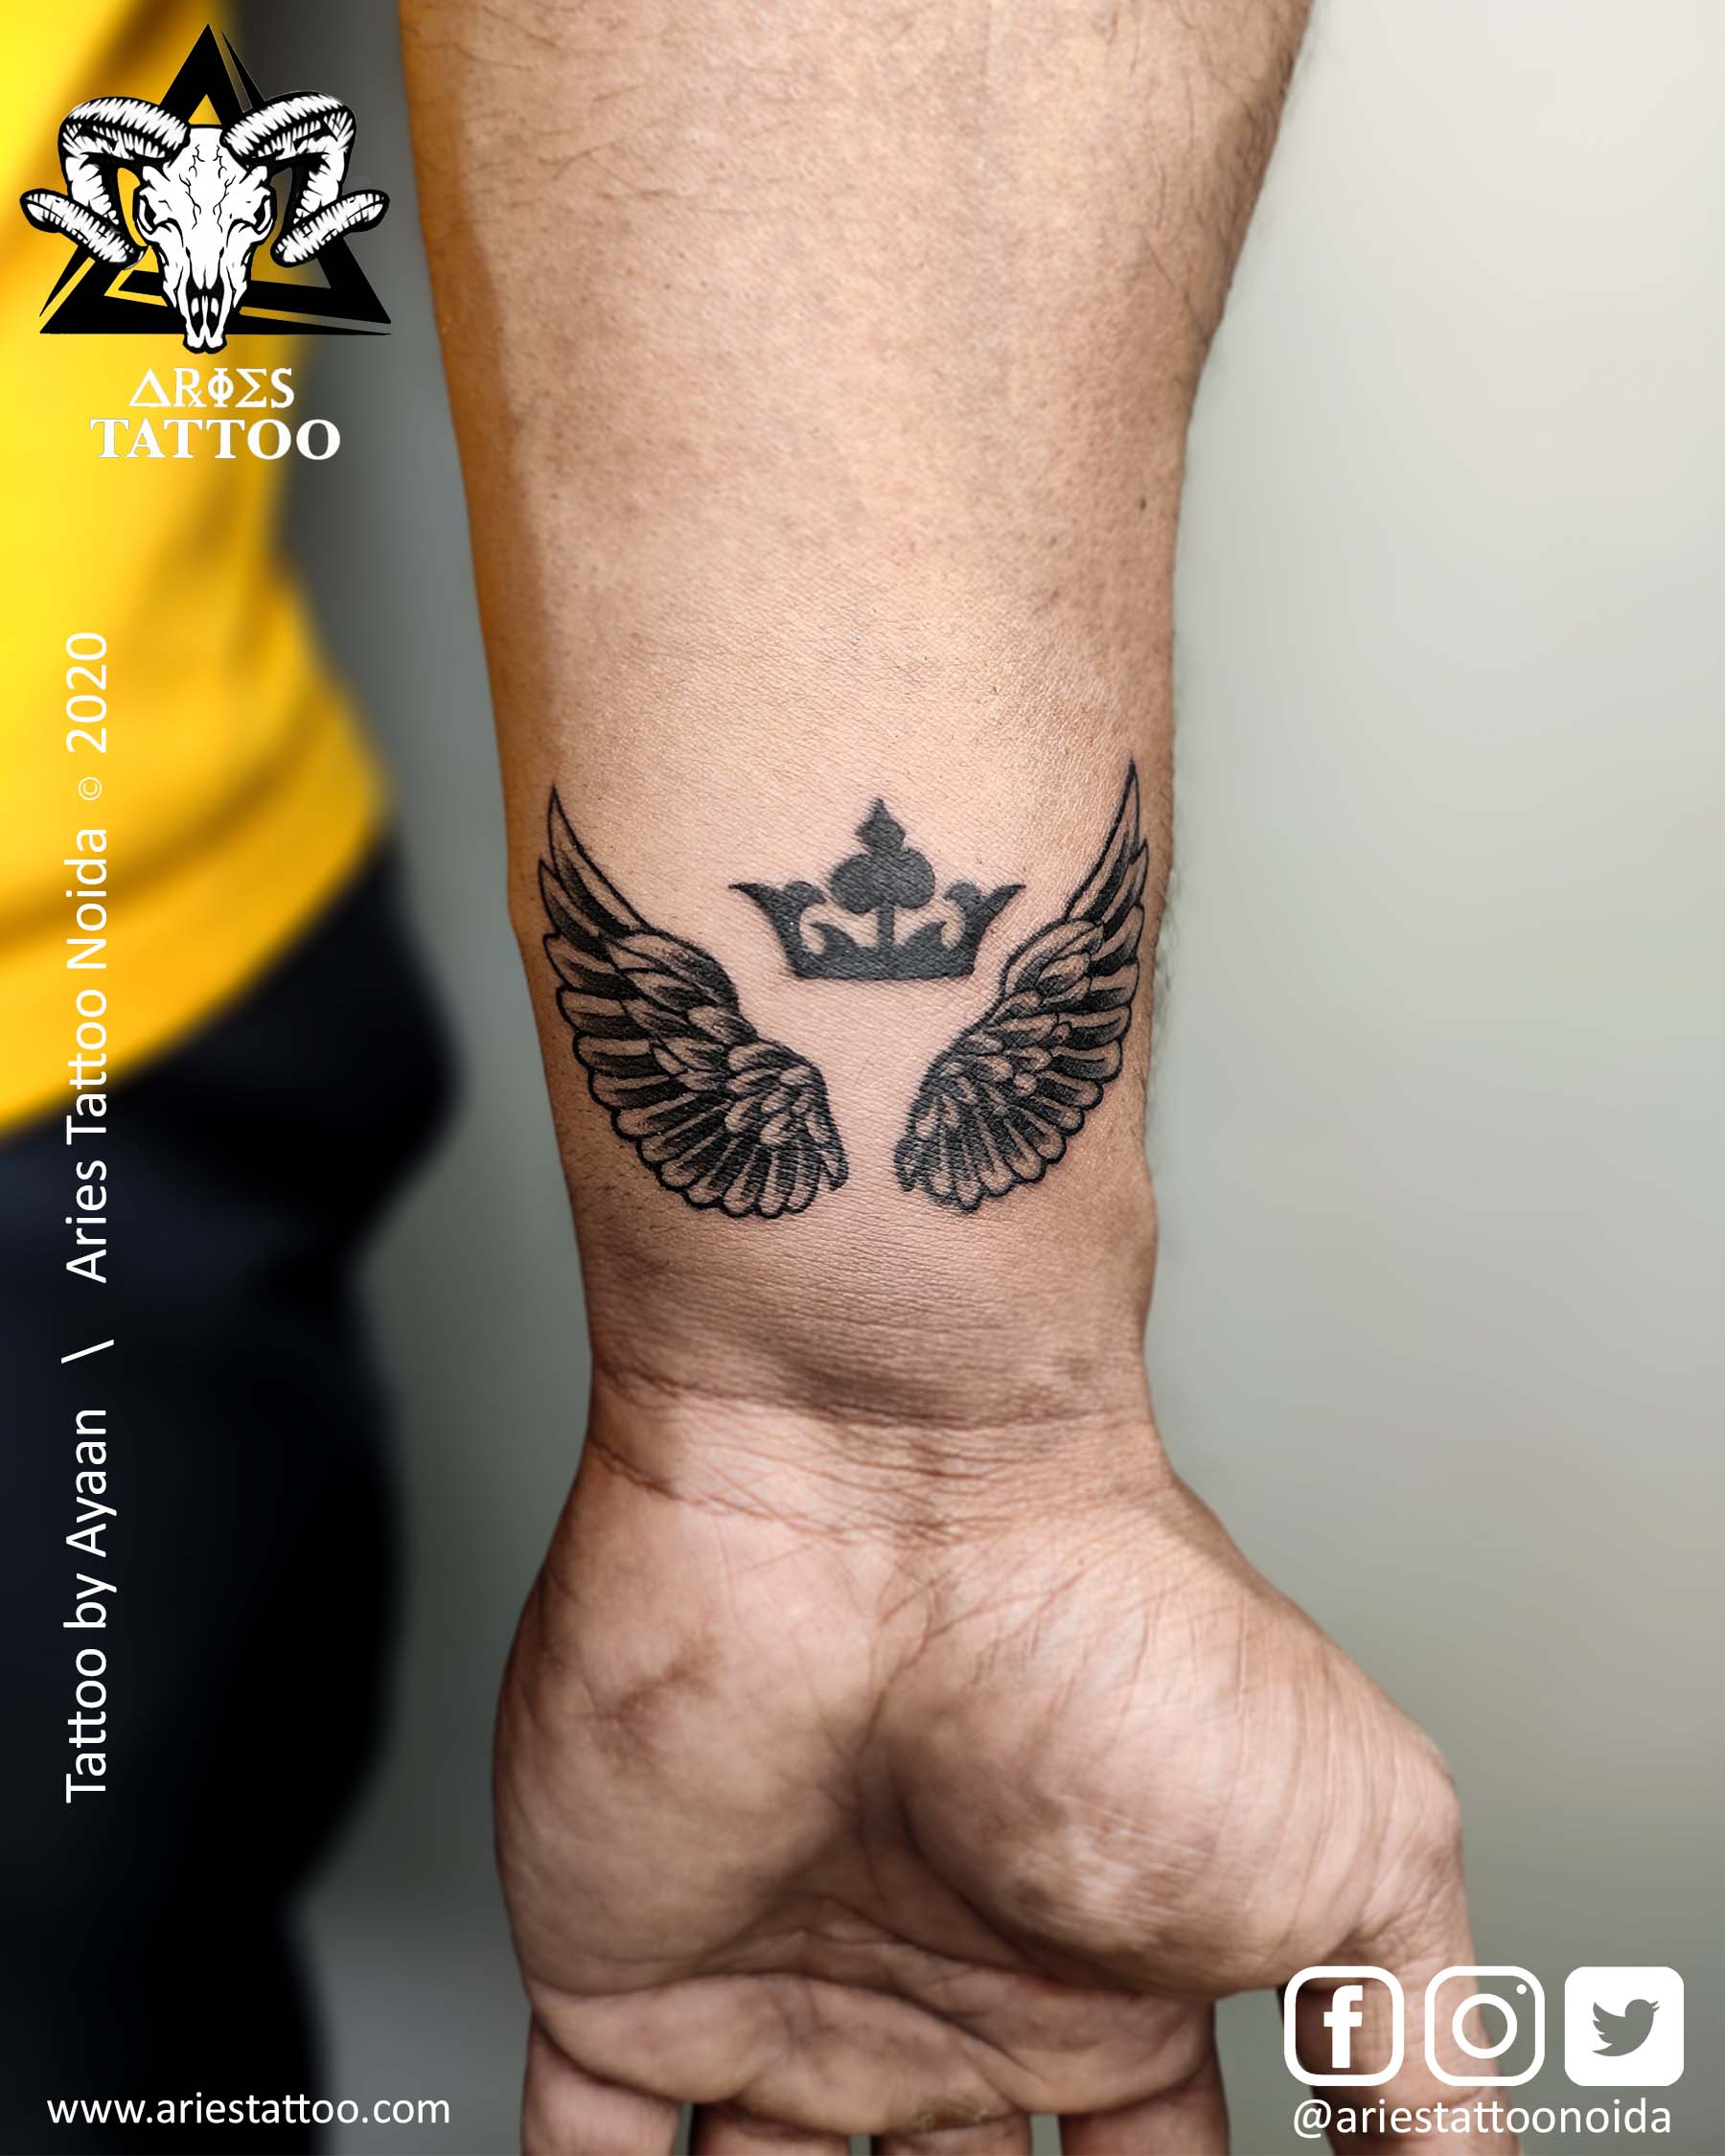 Wings Tattoo by Ayaan |Aries Tattoo Noida | Tattoo Shop and Studio In Noida